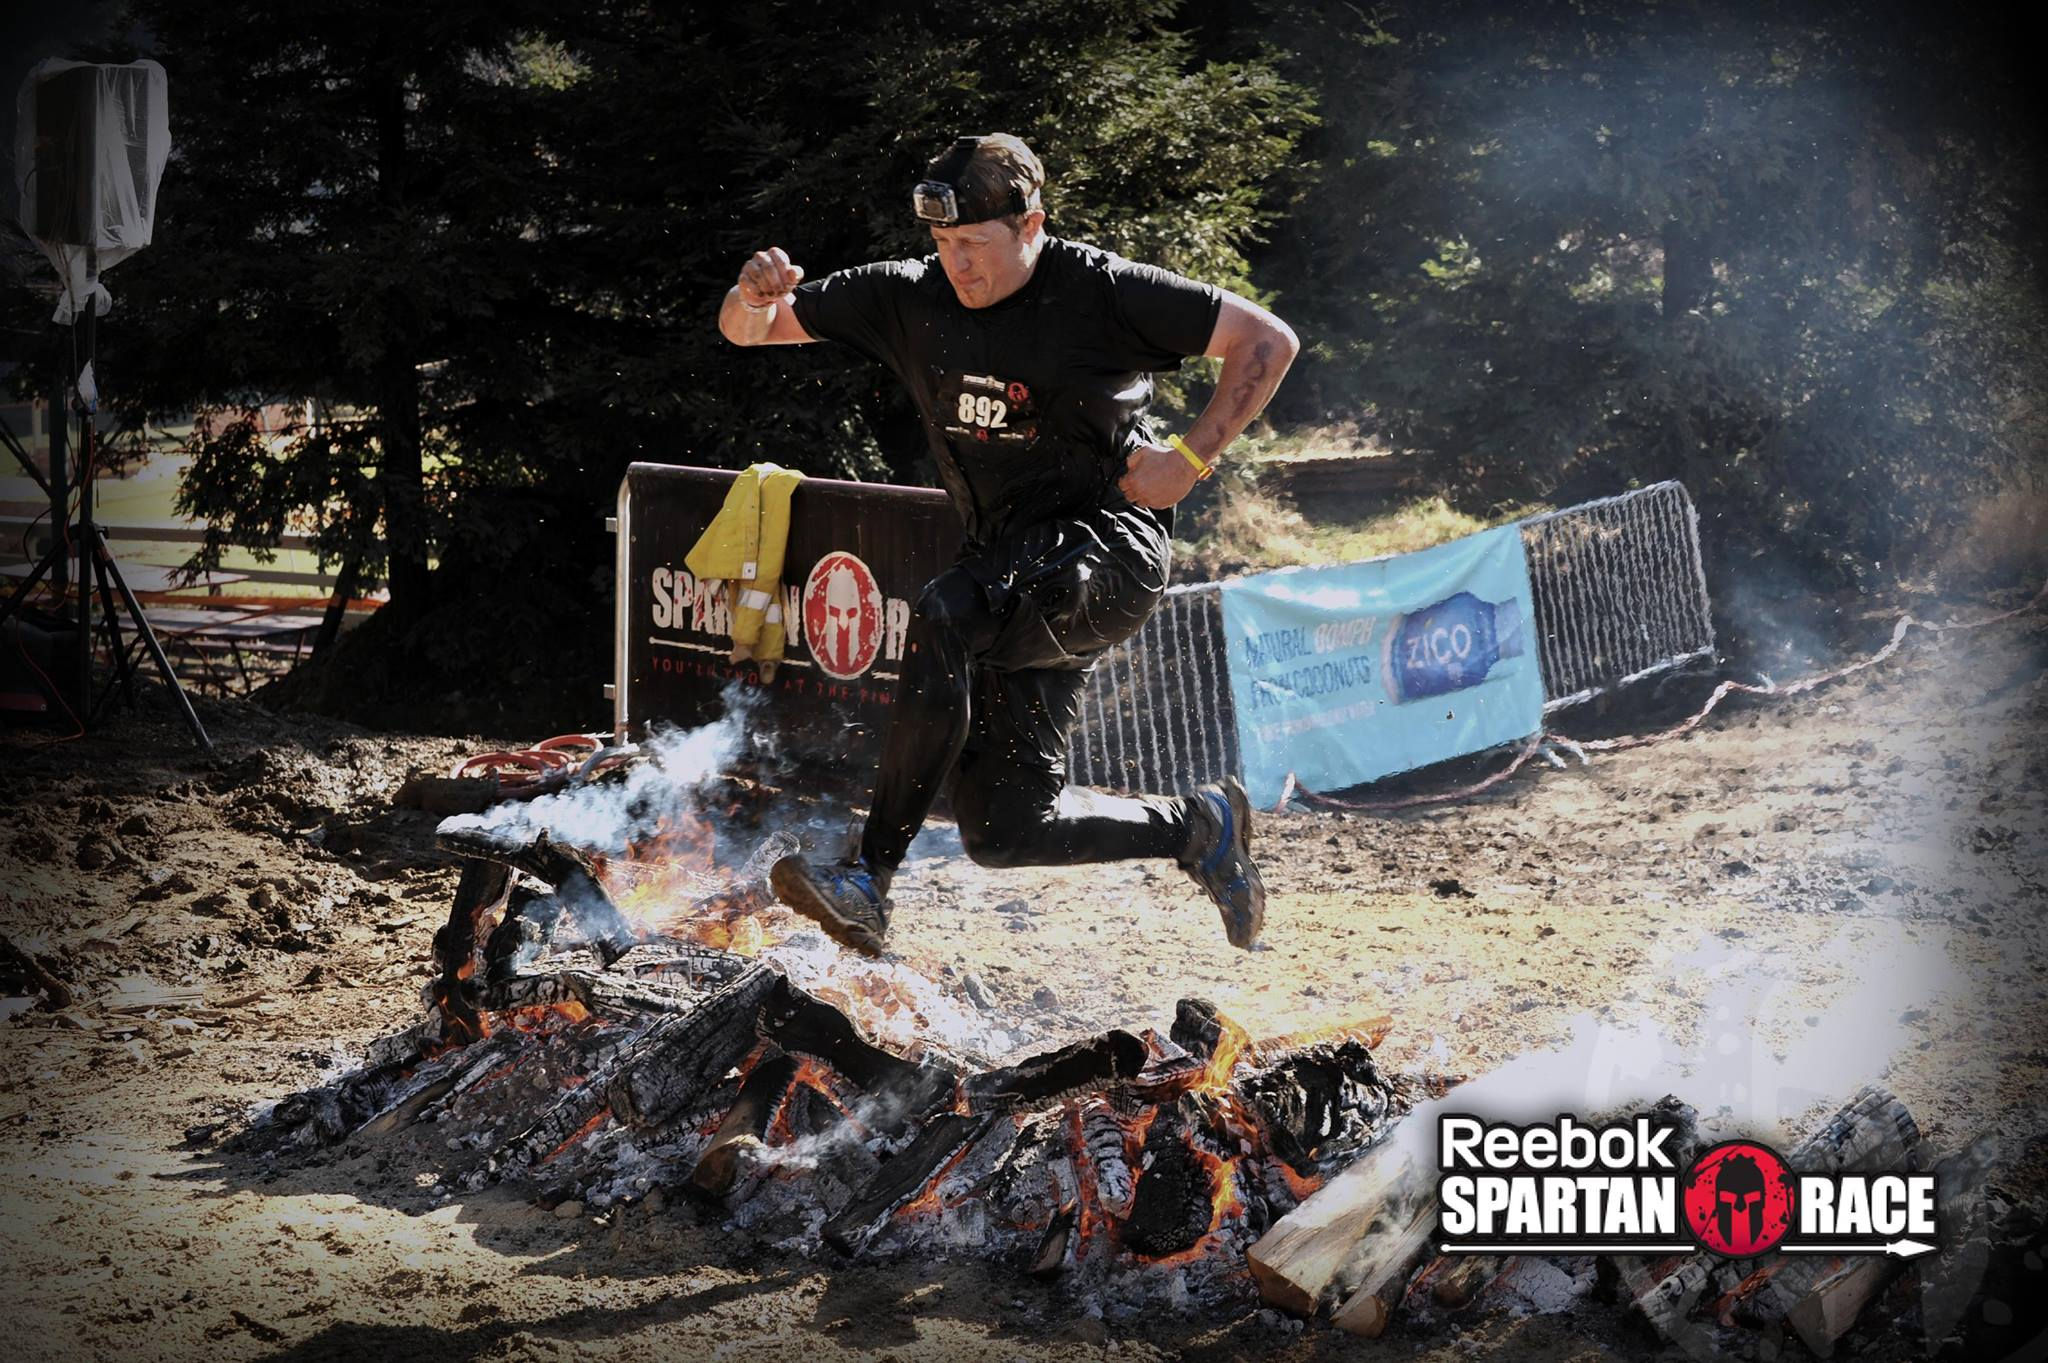 The 2013 Spartan Race in Malibu